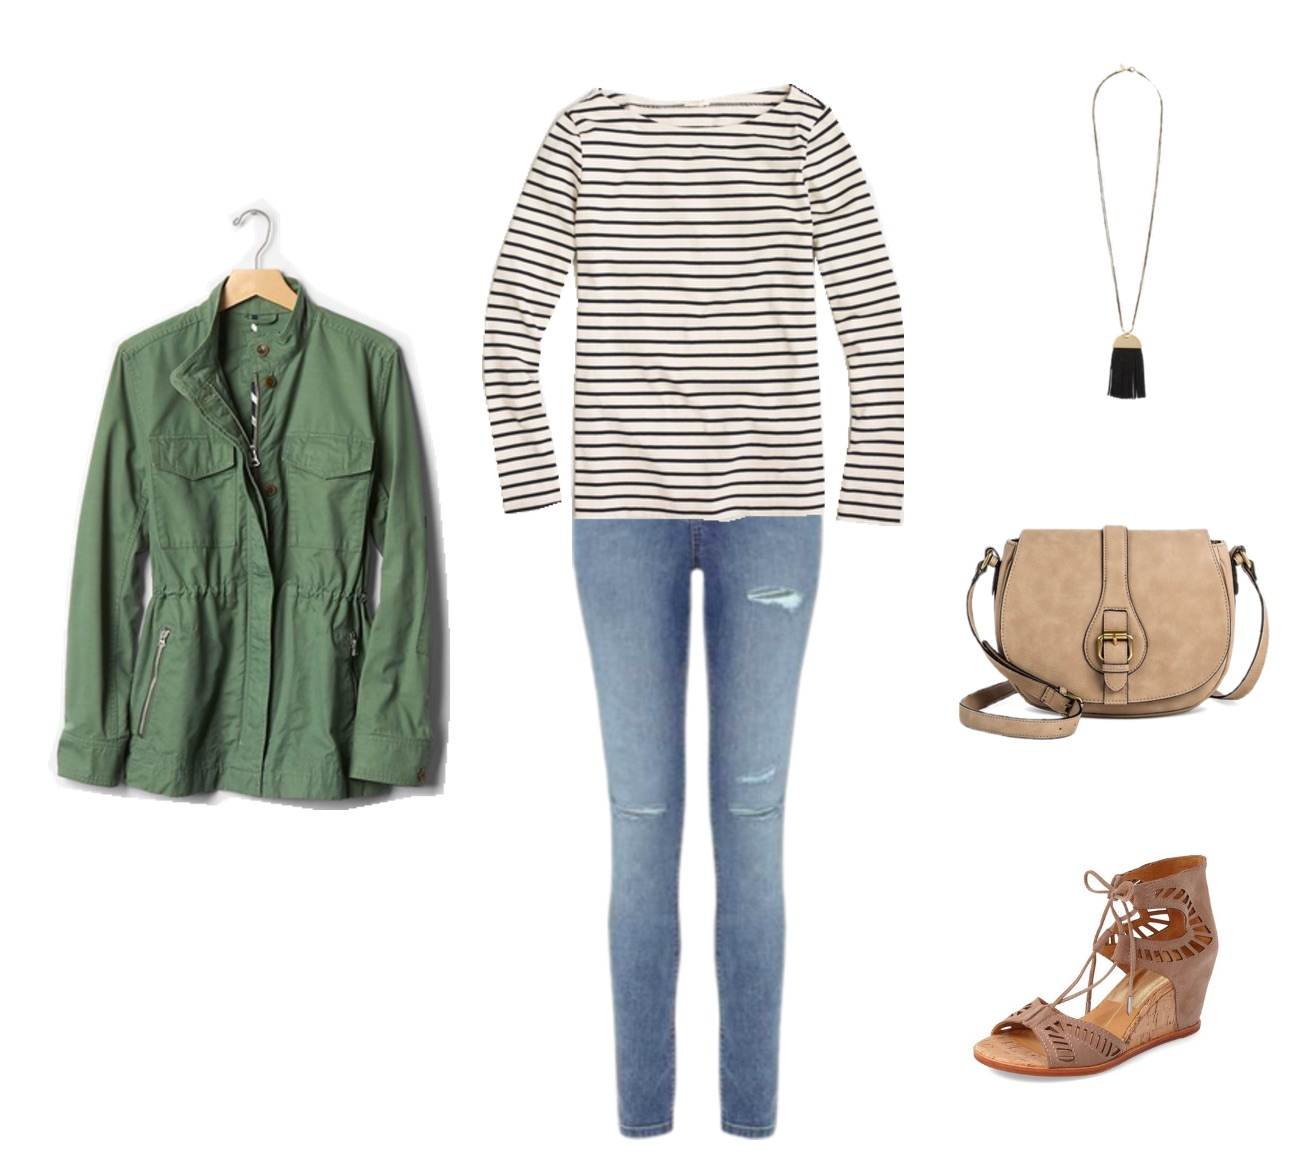 Fashionable Friday OOTD #2